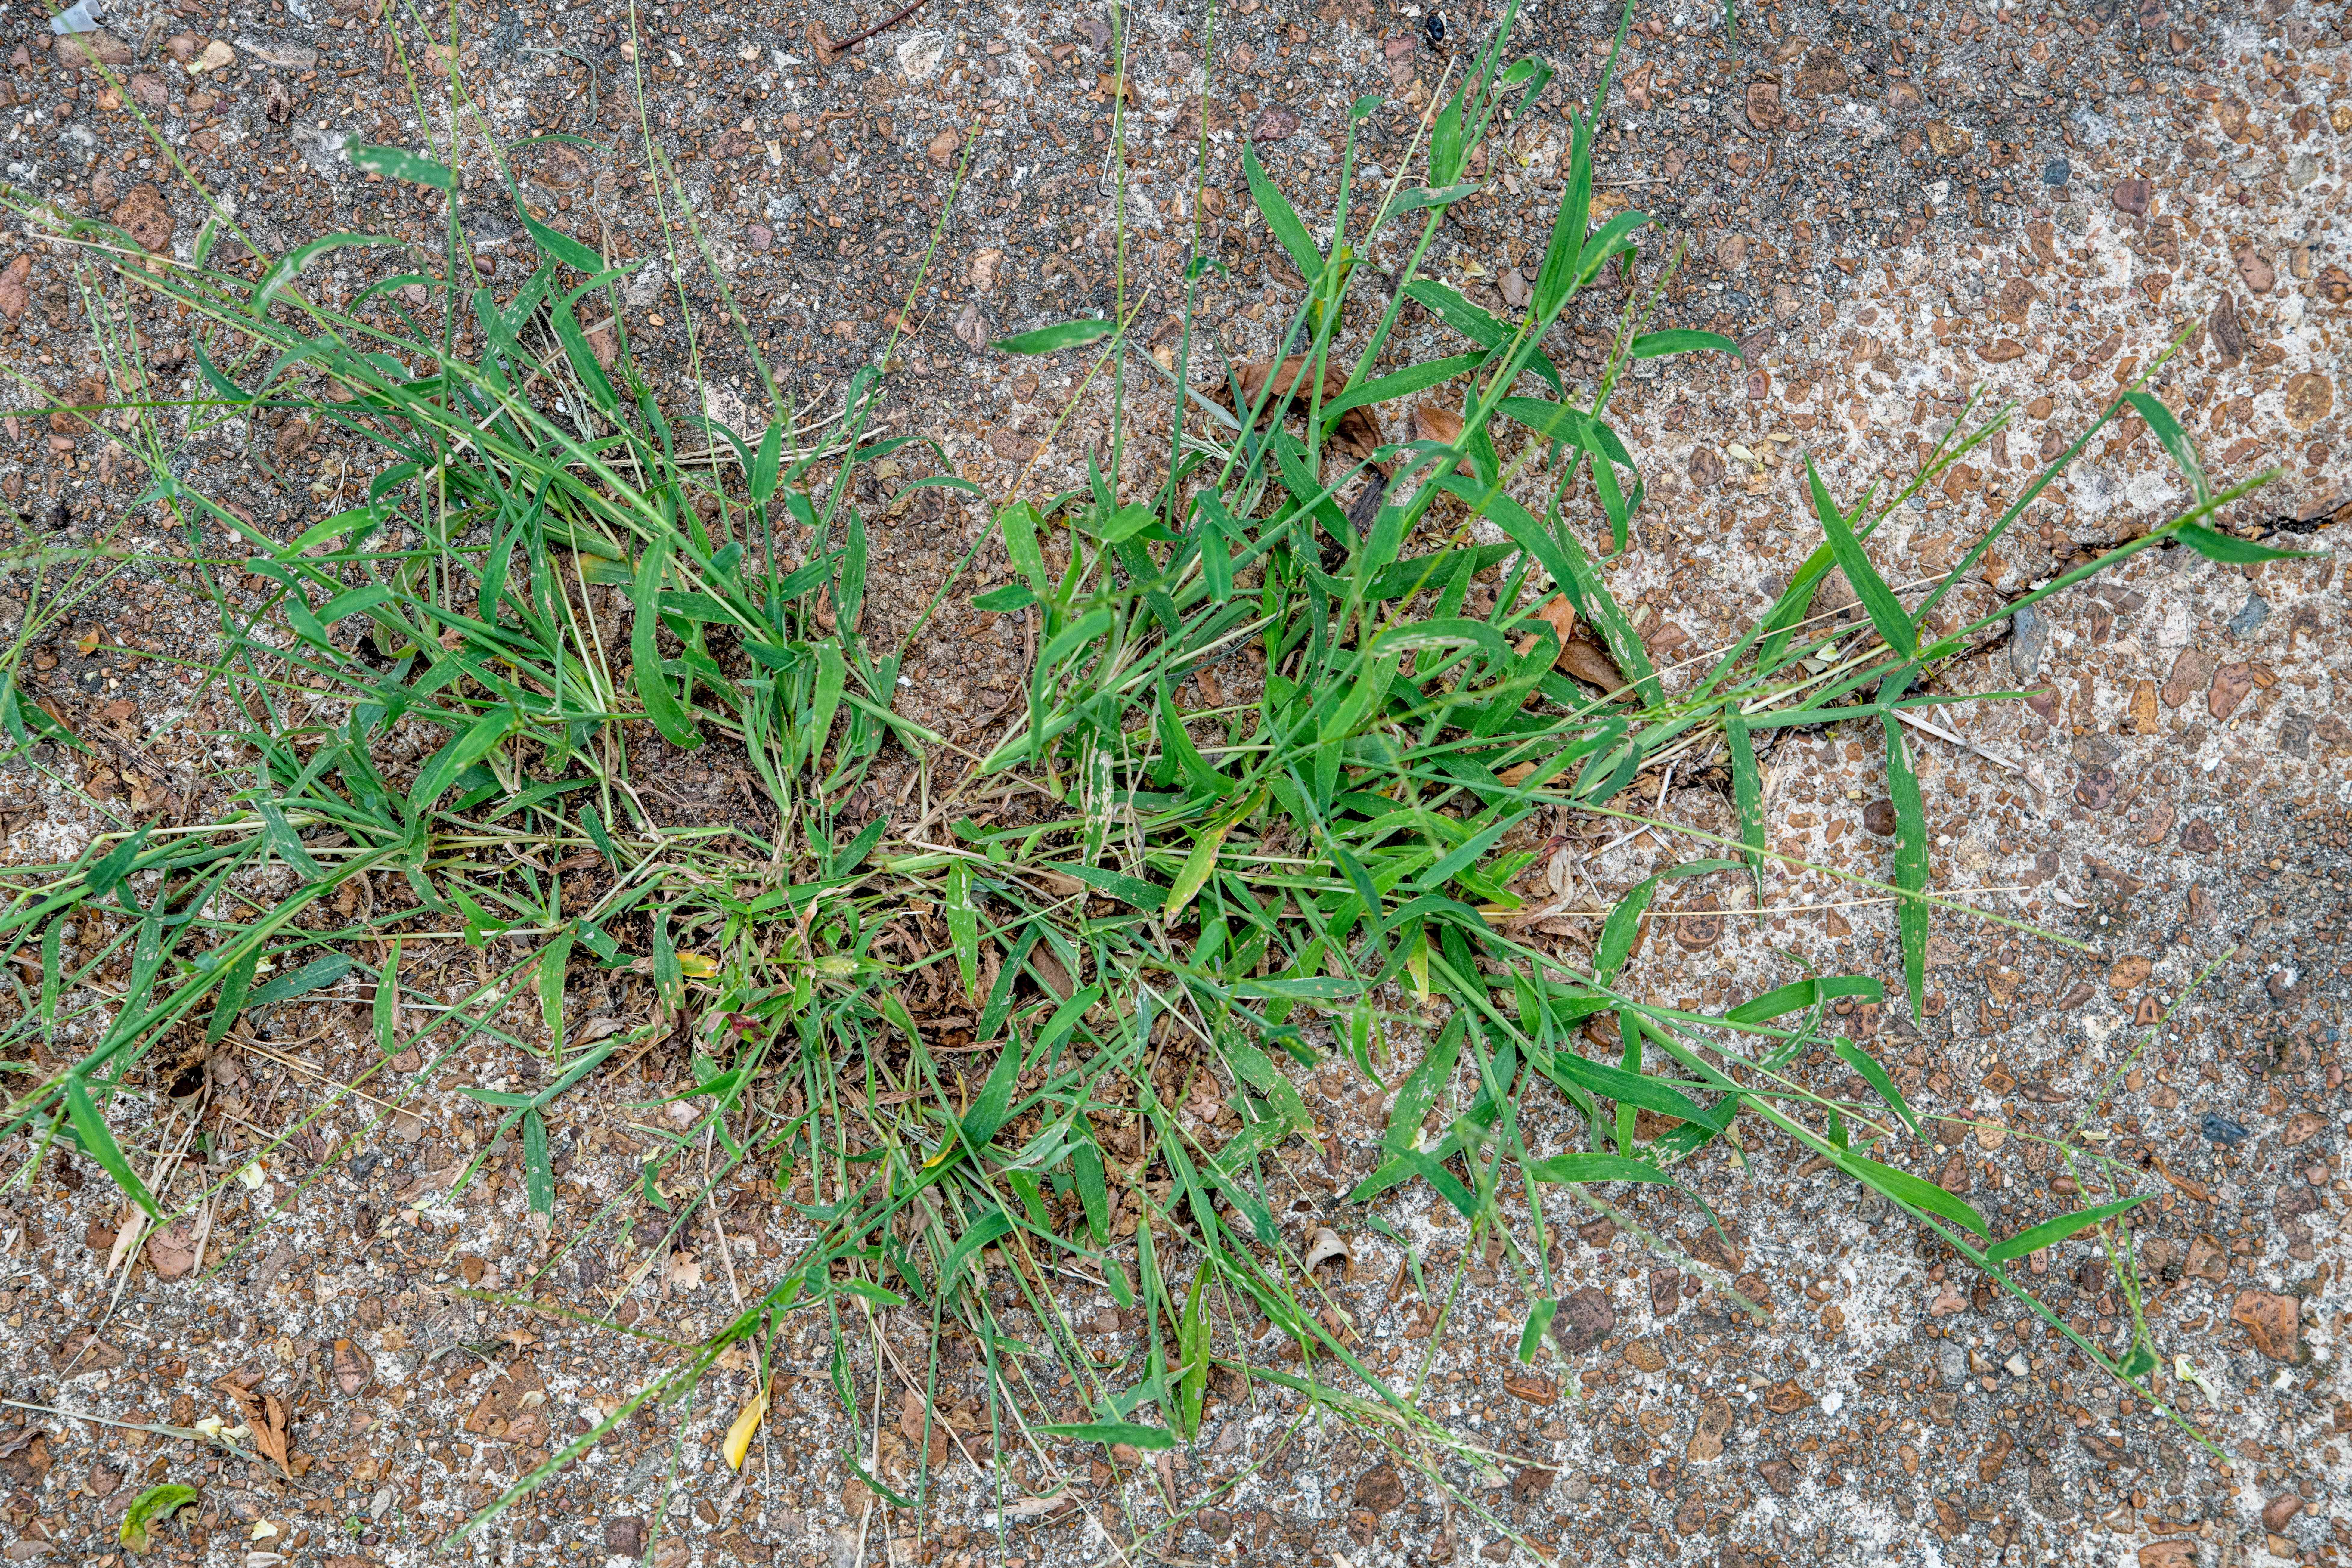 Patch of crabgrass spreading over cement